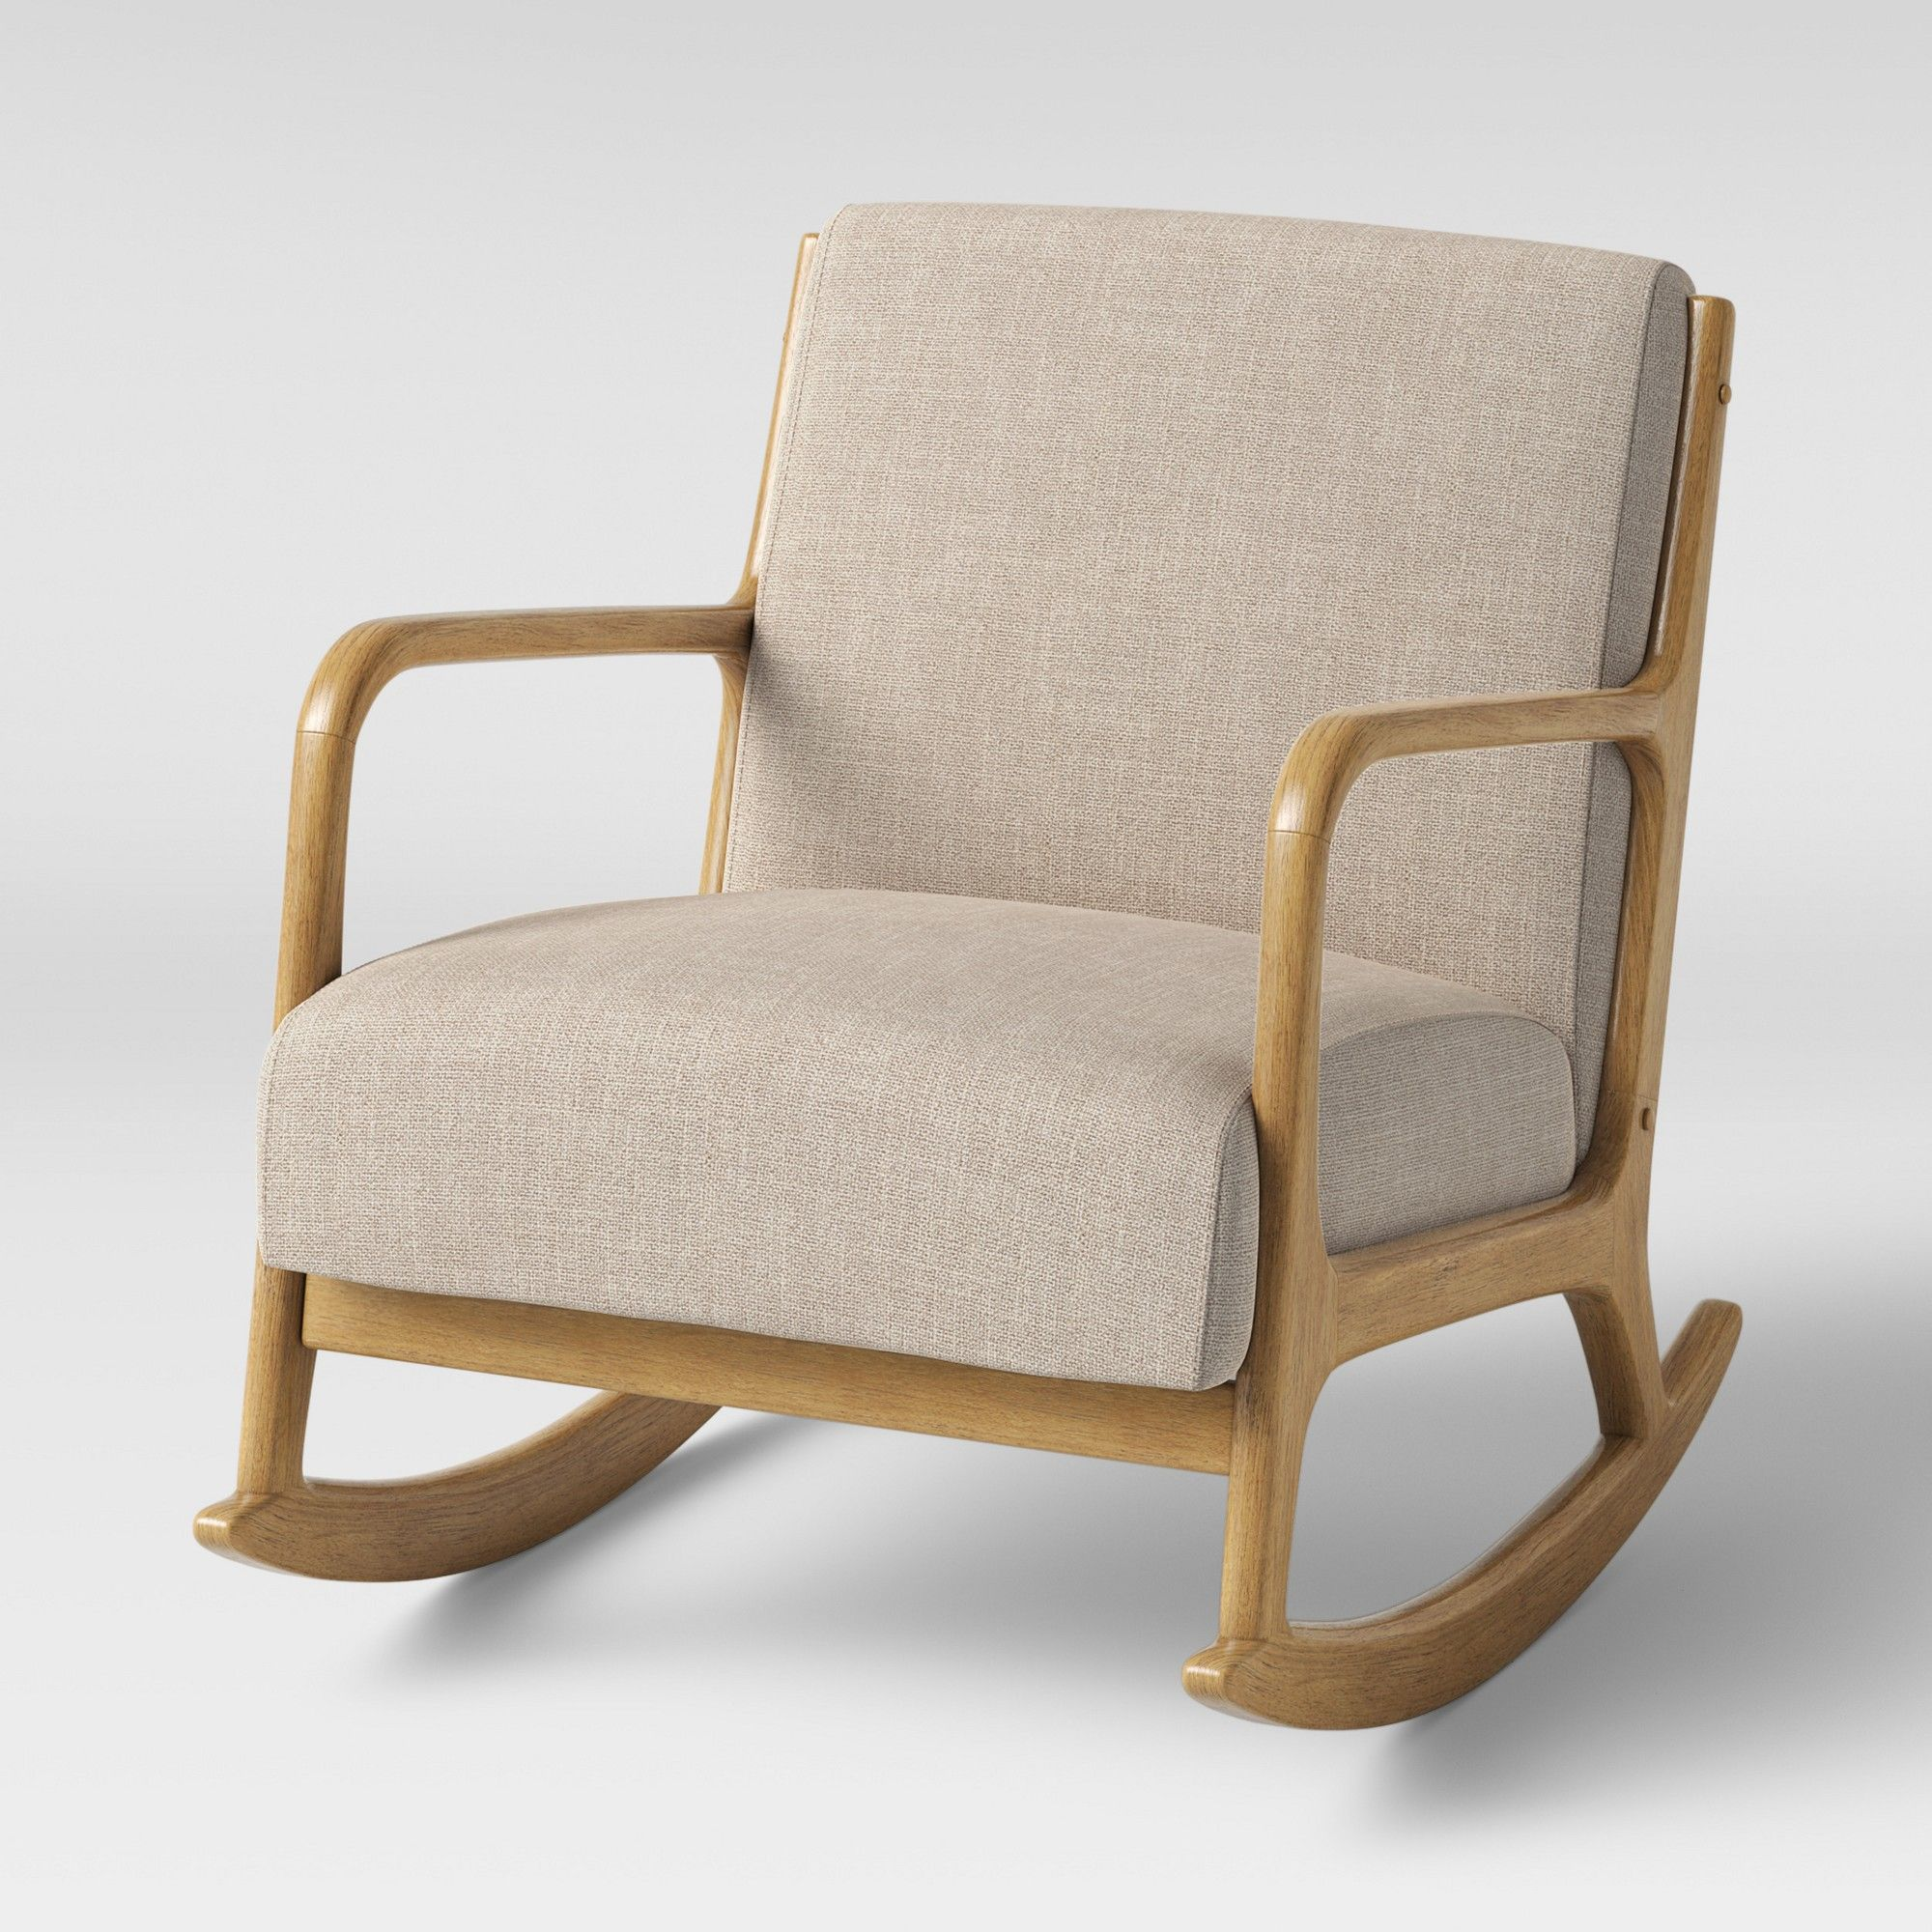 Esters Rocking Accent Chair Cream Project 62 White Wood Arm